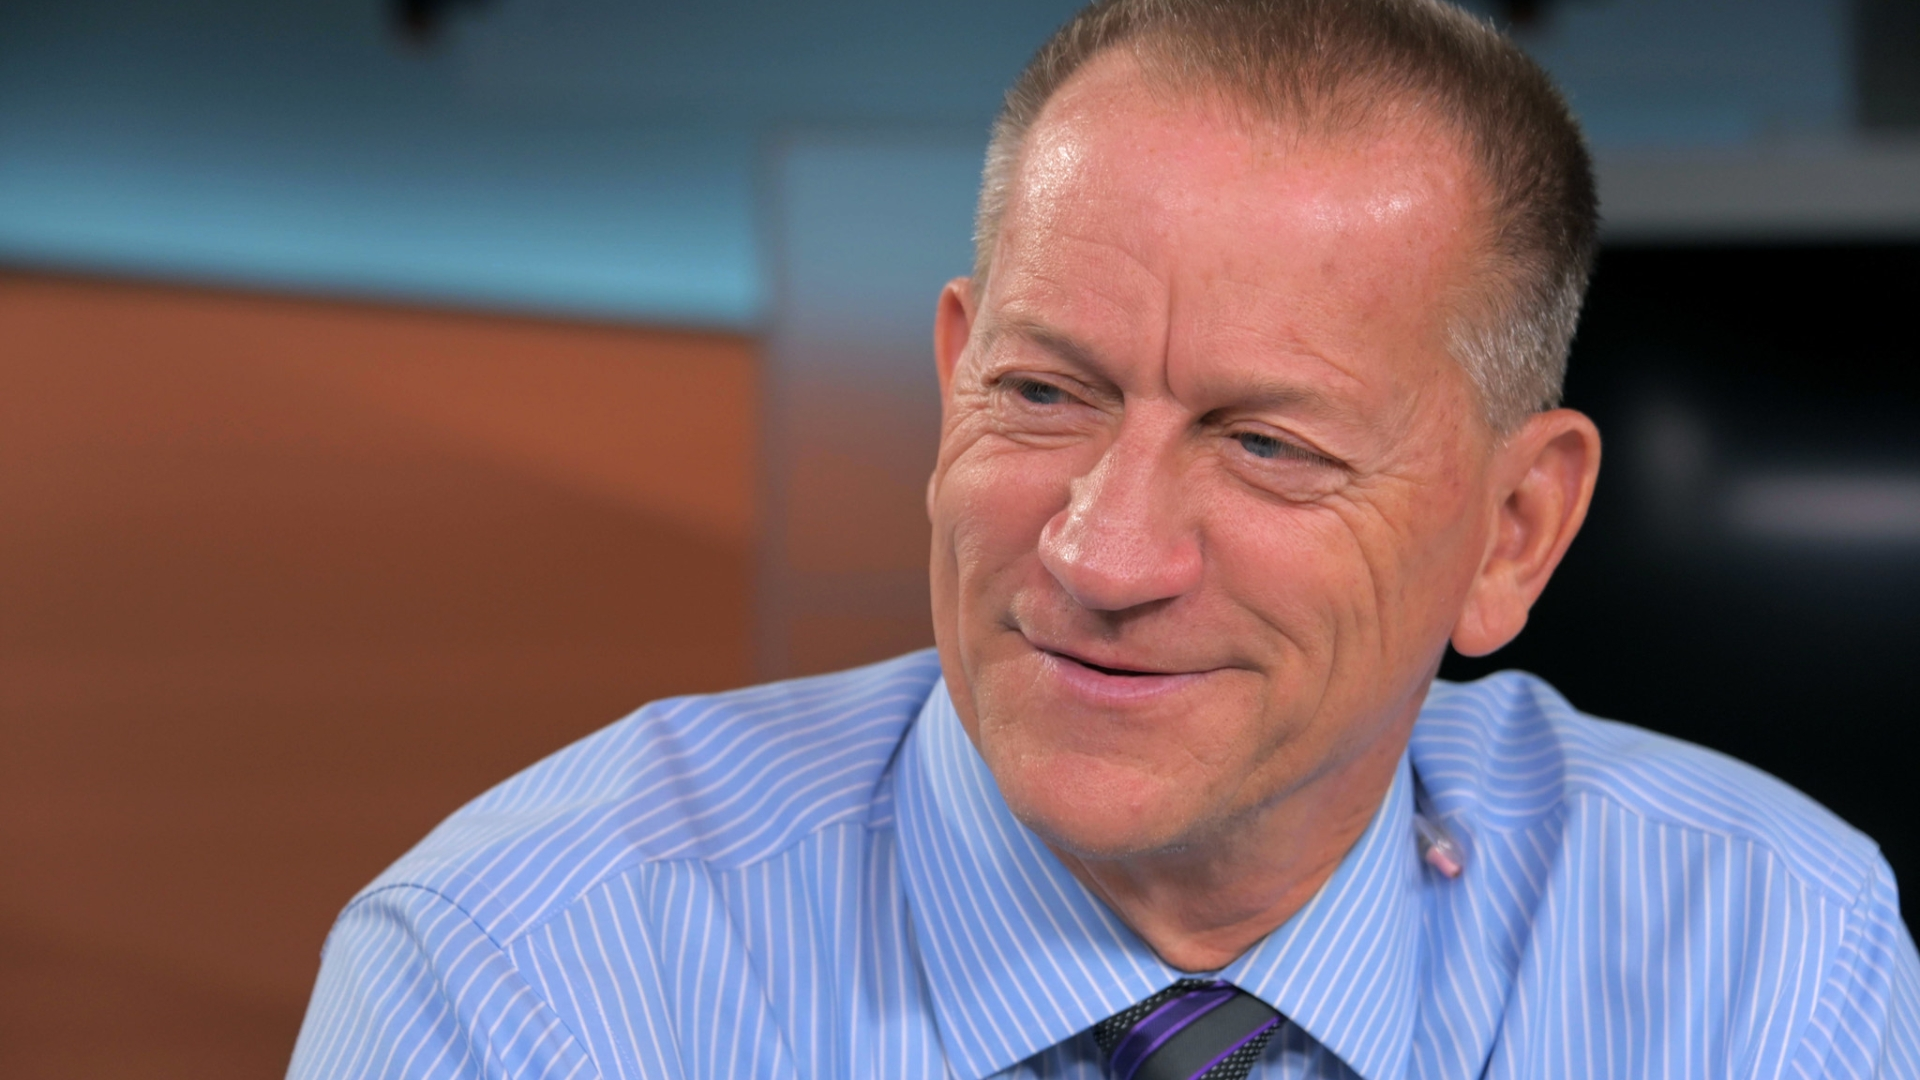 After fighting addiction, WBAL sportscaster Keith Mills